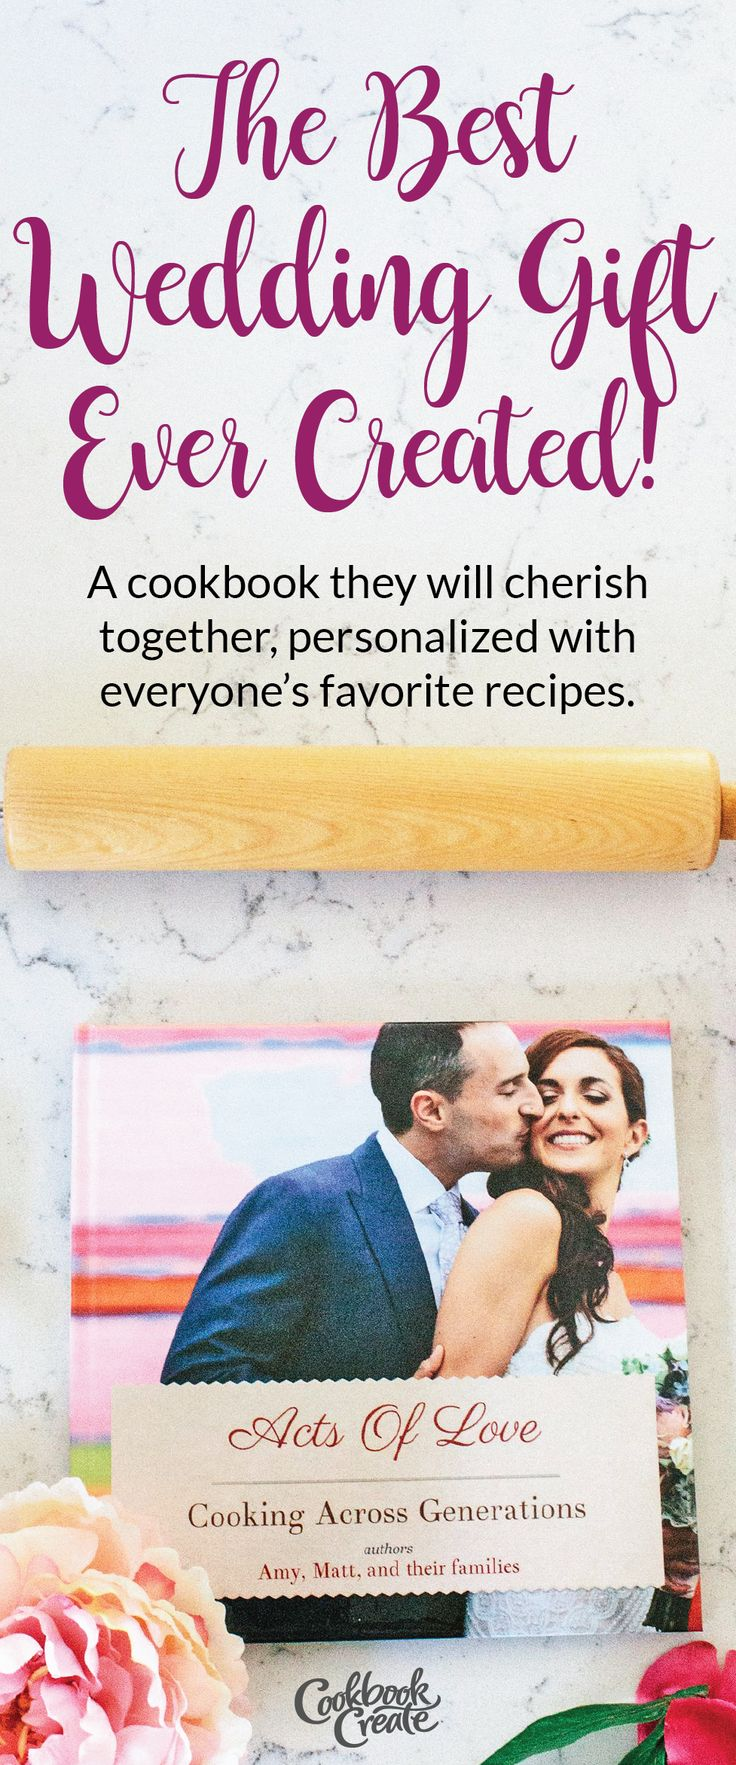 how to make a cookbook on iphoto